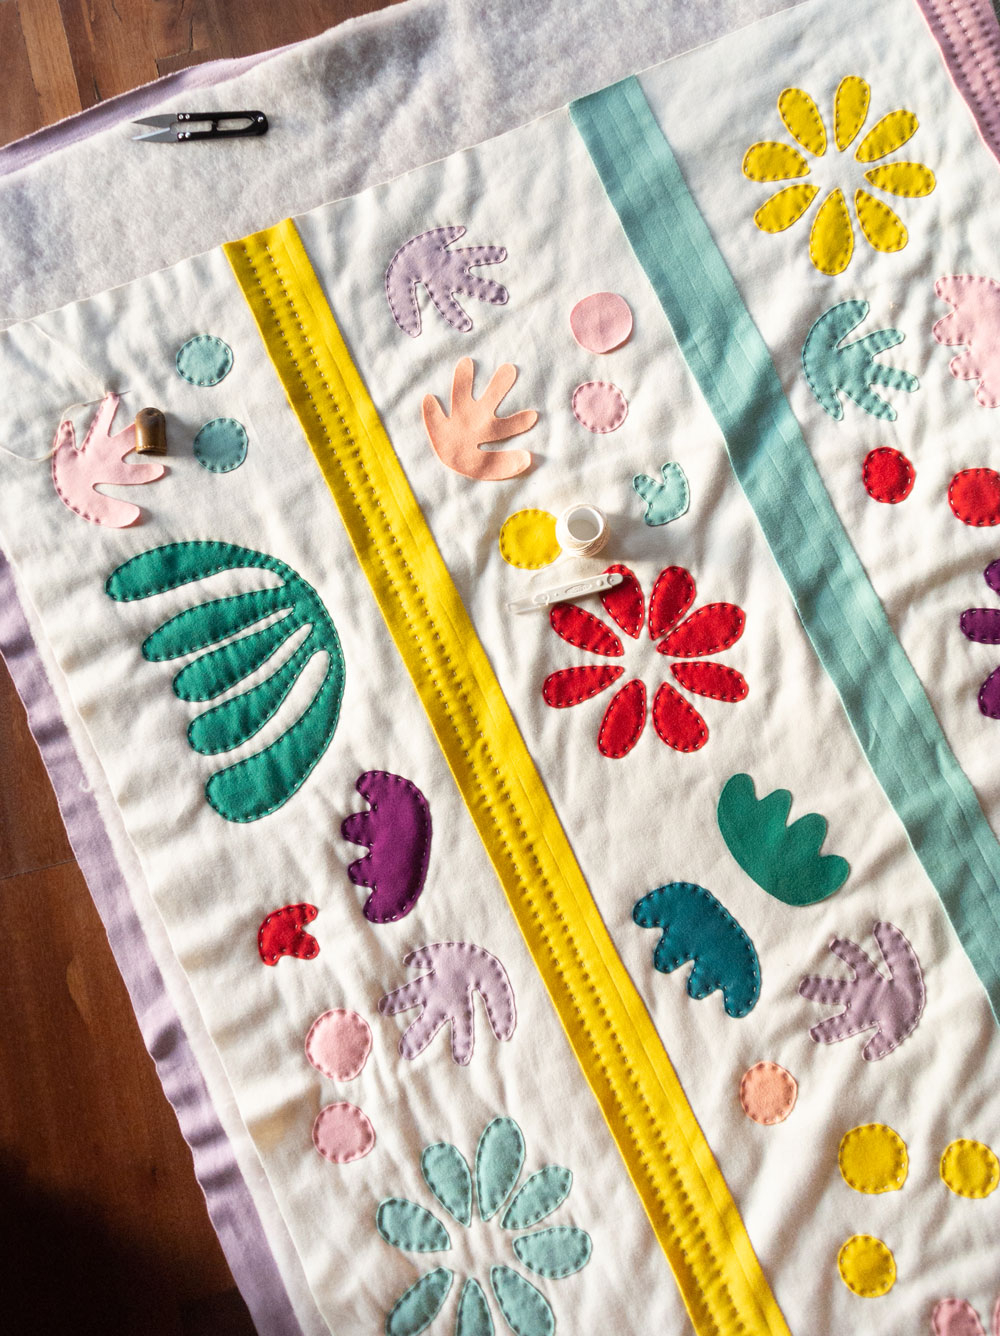 Bohemian Embroidery Patterns The Bohemian Garden Quilt Pattern Choose Your Own Adventure Suzy